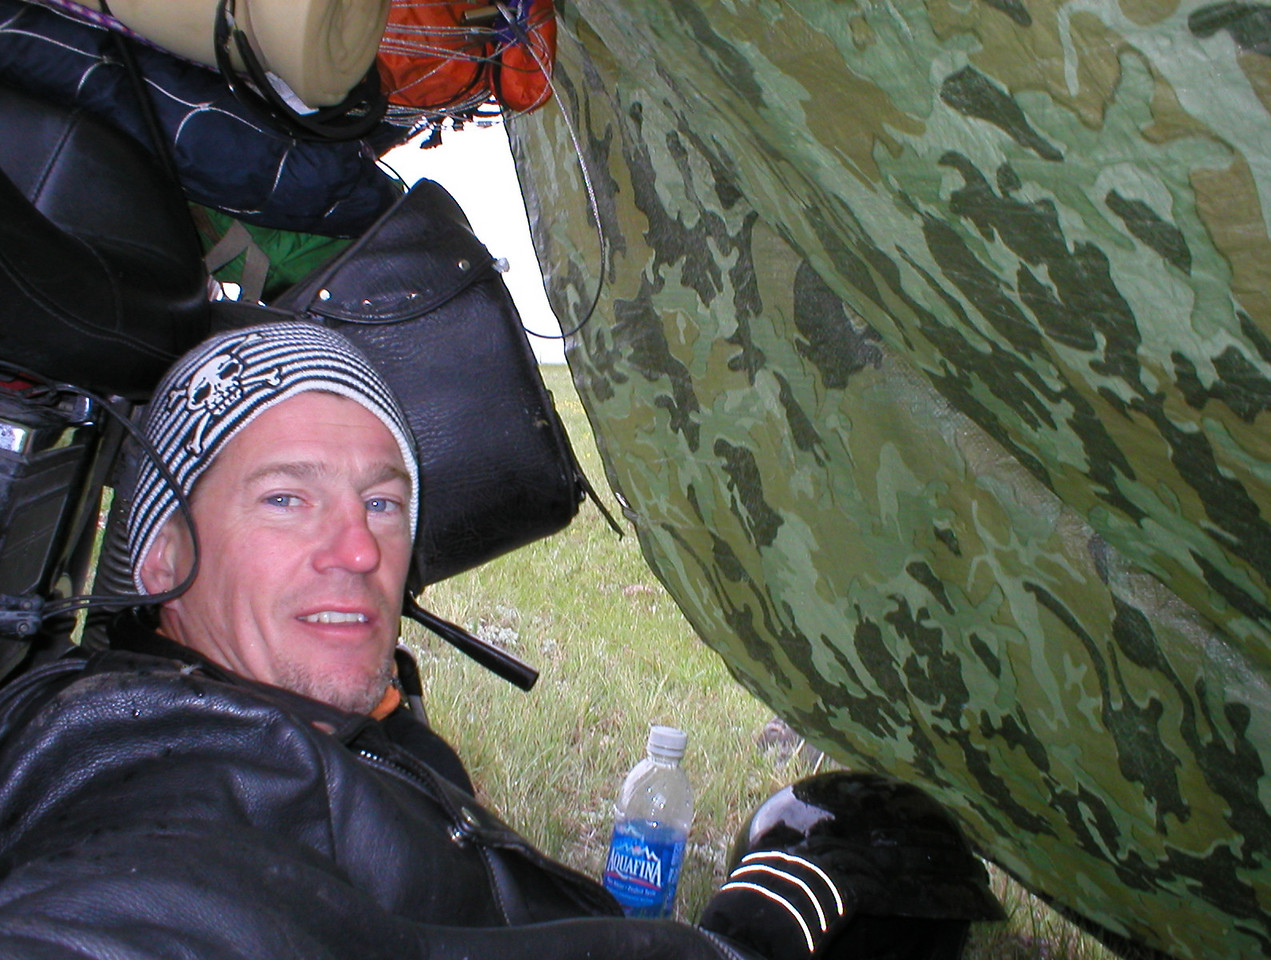 The storm with a lot of wind came and went. I stayed warm and dry while eating lunch in my little lean-to shelter. One rock I chose for a tie down was insufficient. In the middle of the storm I had to lash one end of the tarp to my boot. It was a little tense but it worked.